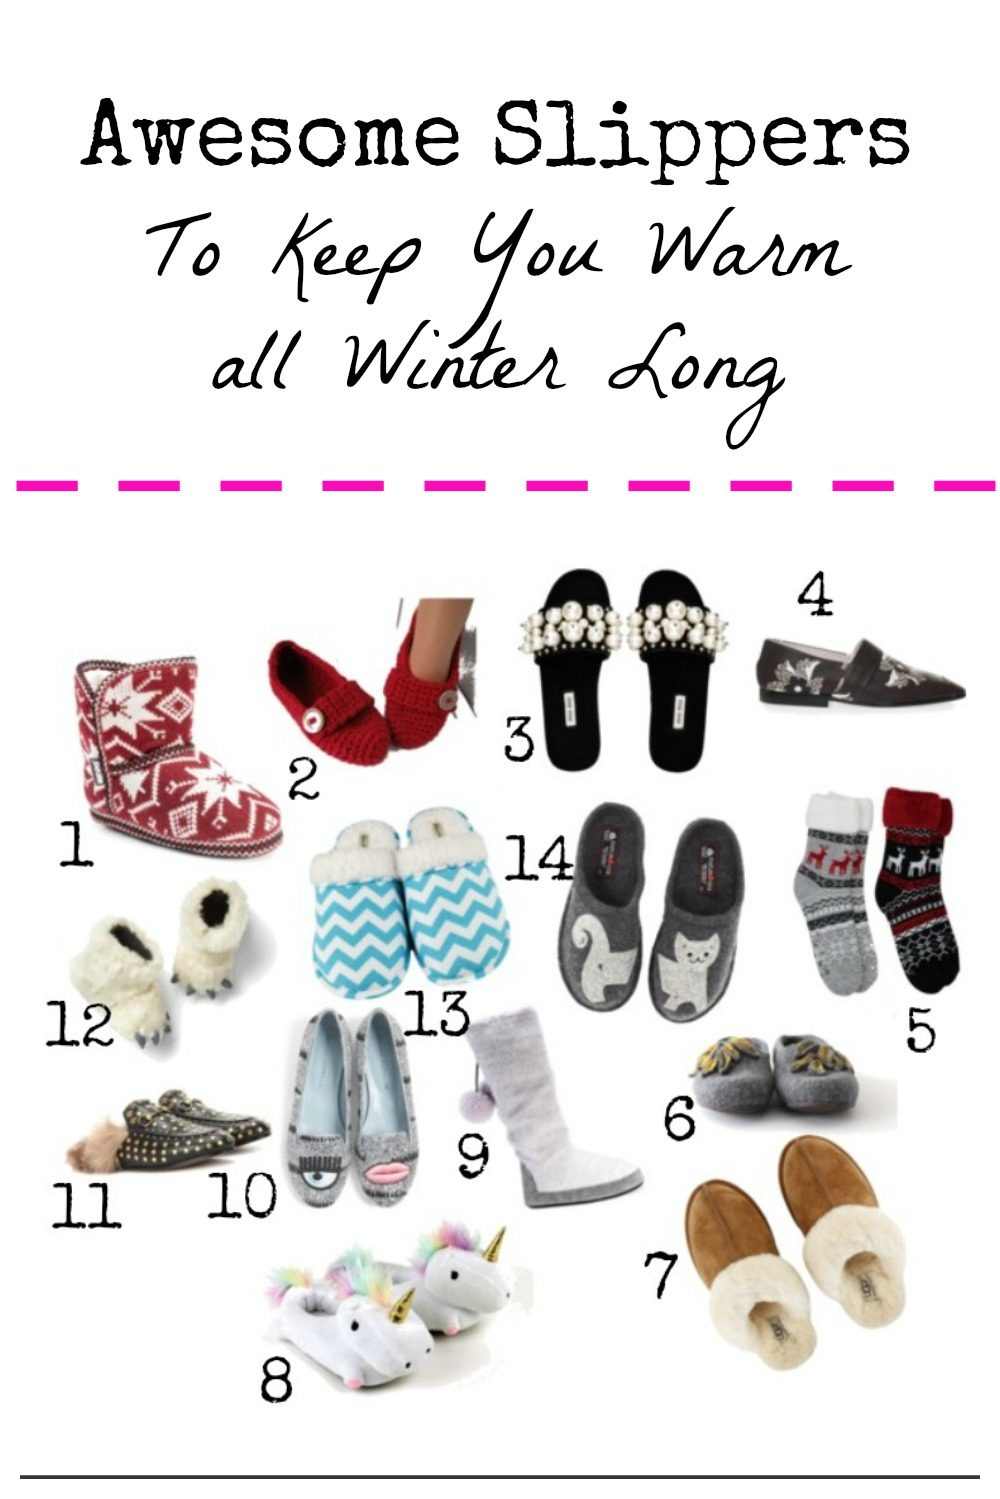 14 great slipper styles that will keep your feet warm